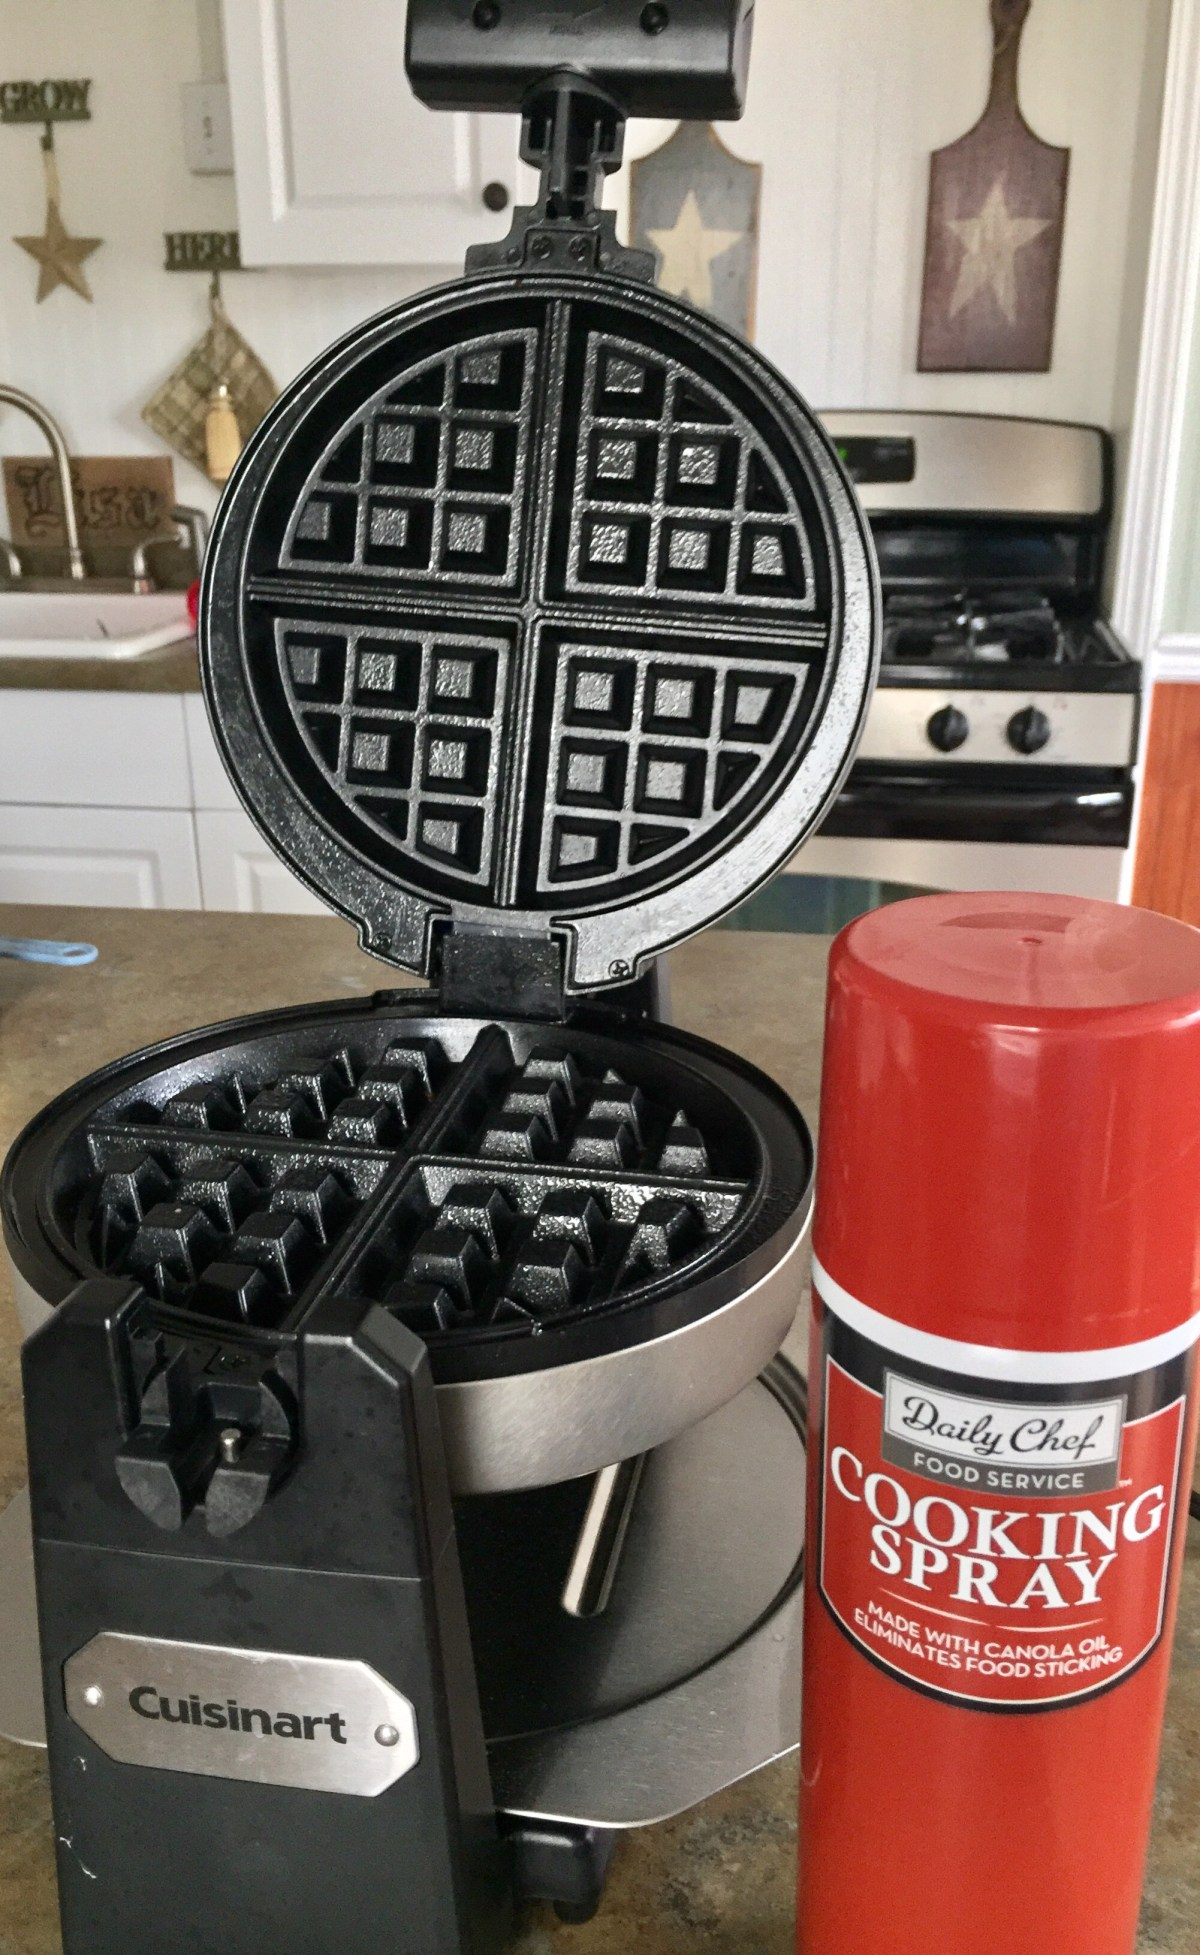 Spray waffle iron with cooking spray. Turn it on and begin to heat.